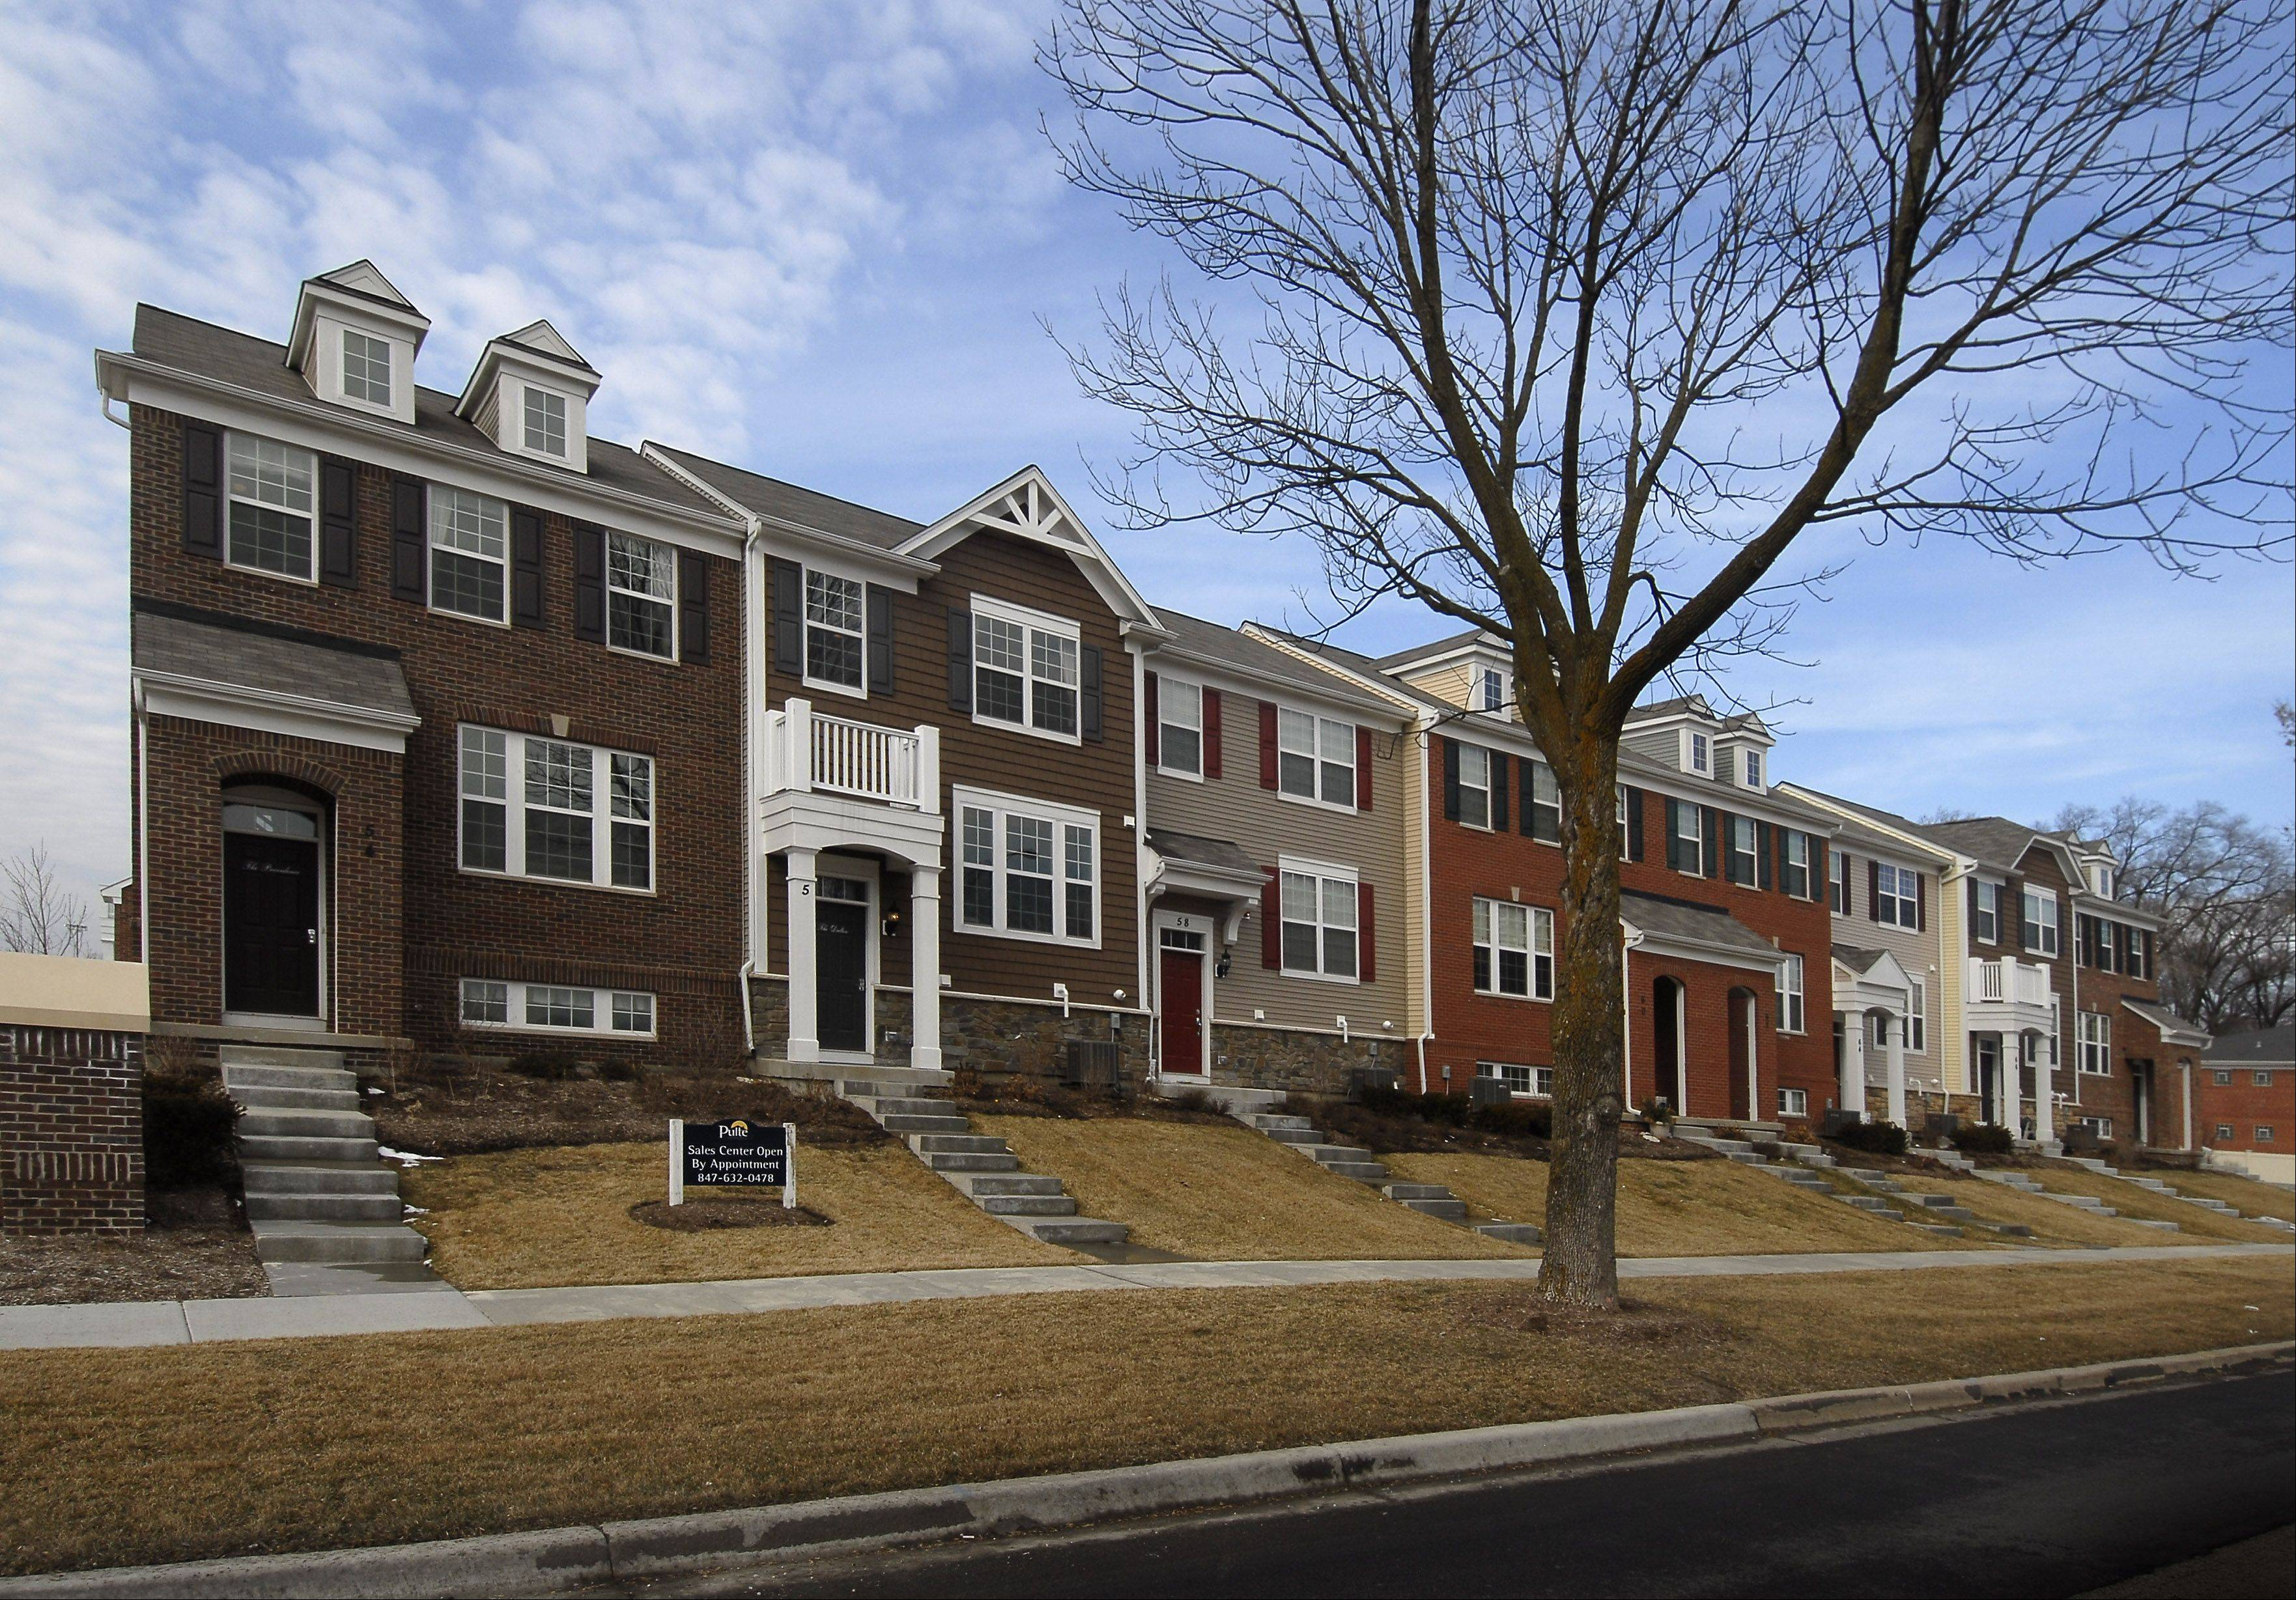 The Arlington Crossings townhouses in Arlington Heights are in an area originally intended to be industrial, but the village is weighing a plan that would open up the land to more retail and residential developments.